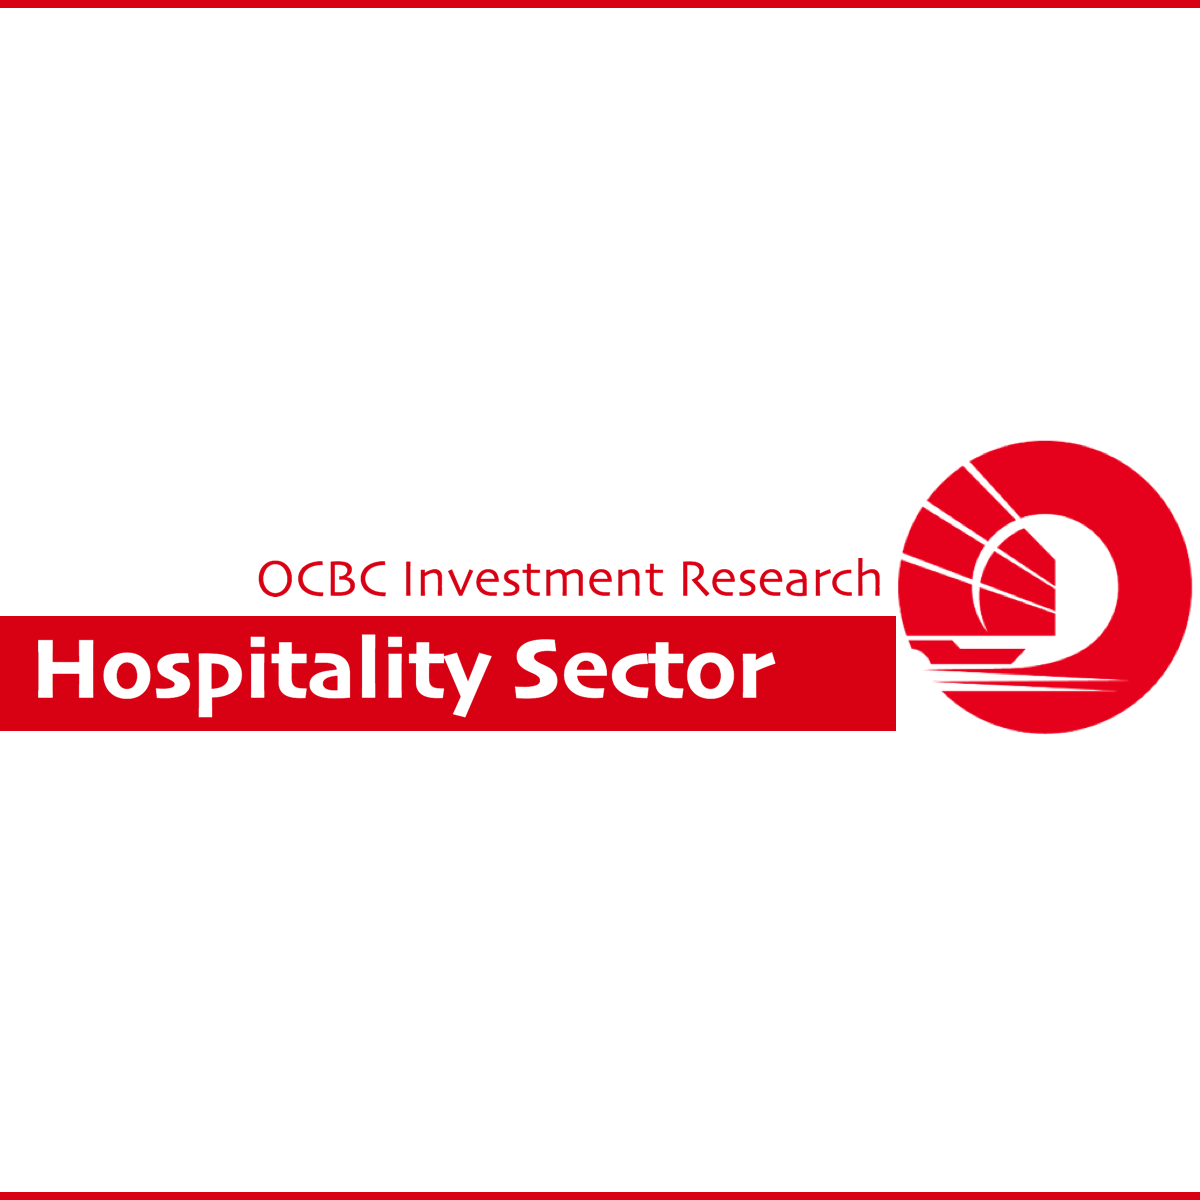 Hospitality Sector - OCBC Investment 2017-12-01: 3Q RECAP – Rich Valuations